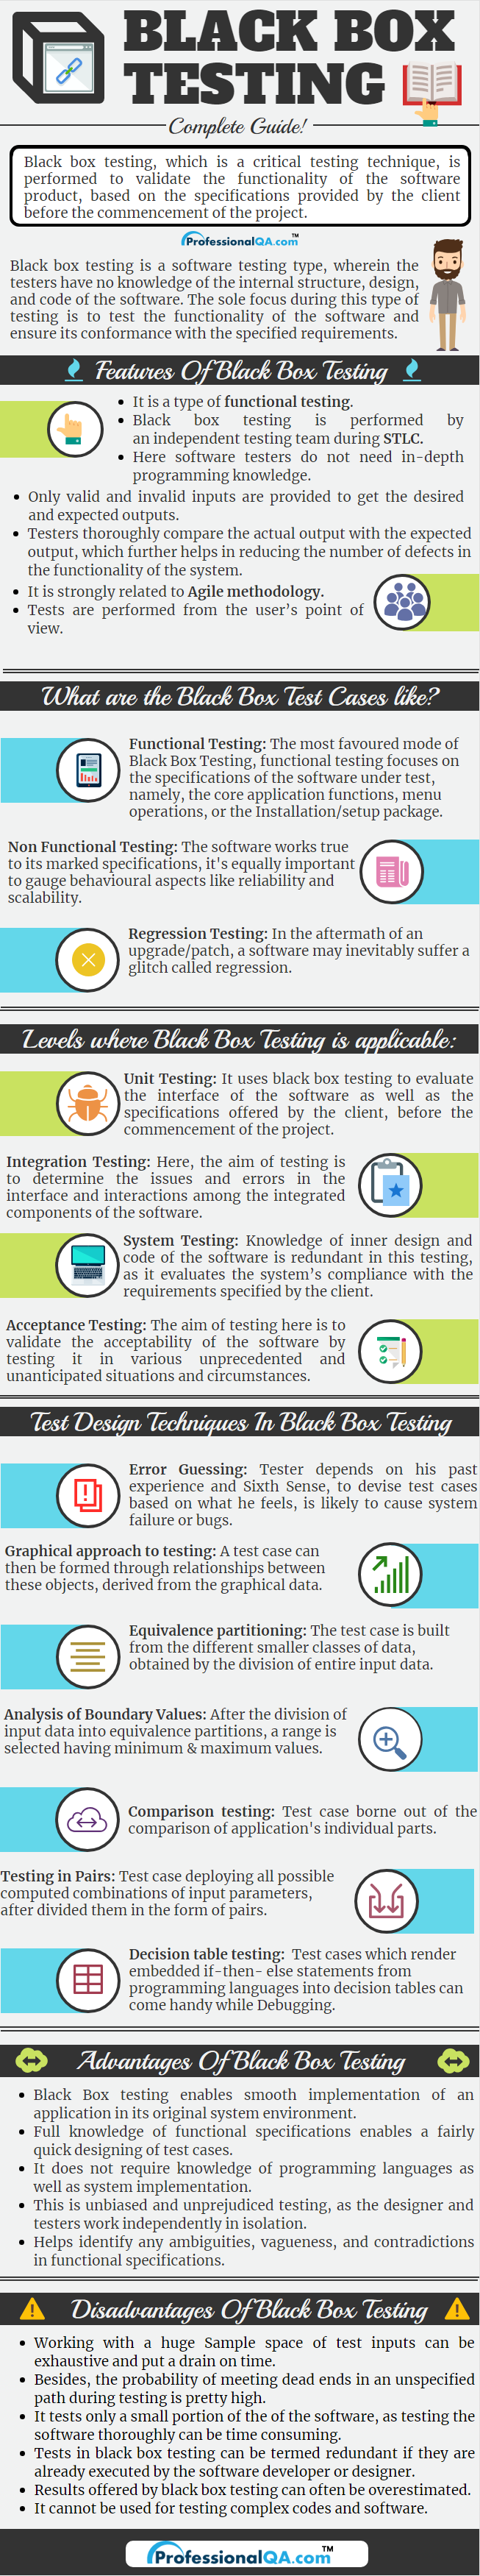 Black Box Testing Infographics